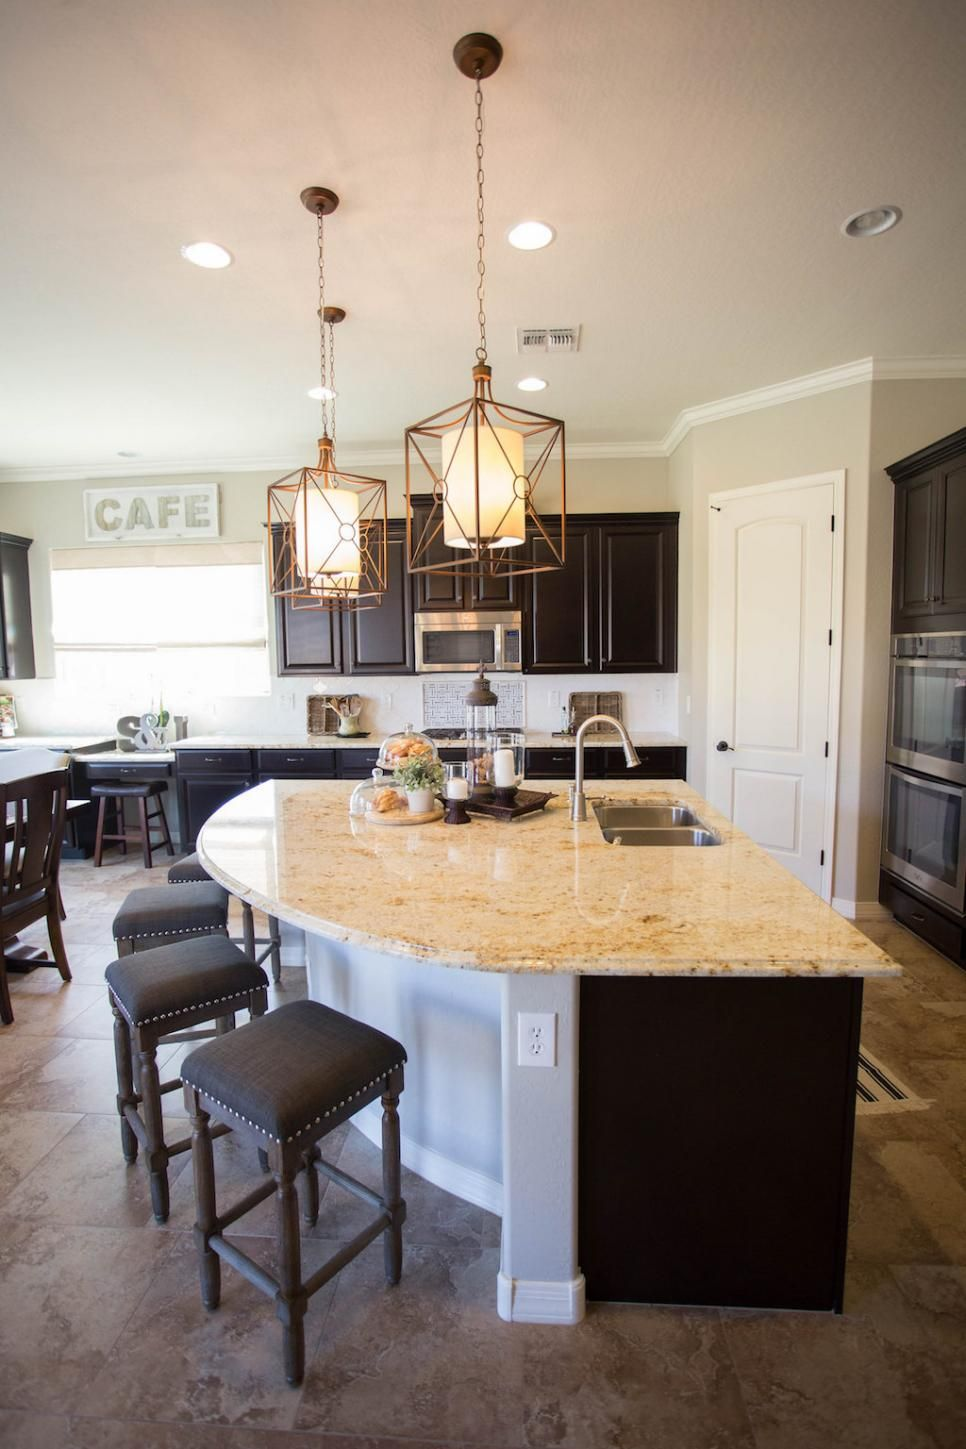 Explanation of Kitchen Remodel Permits